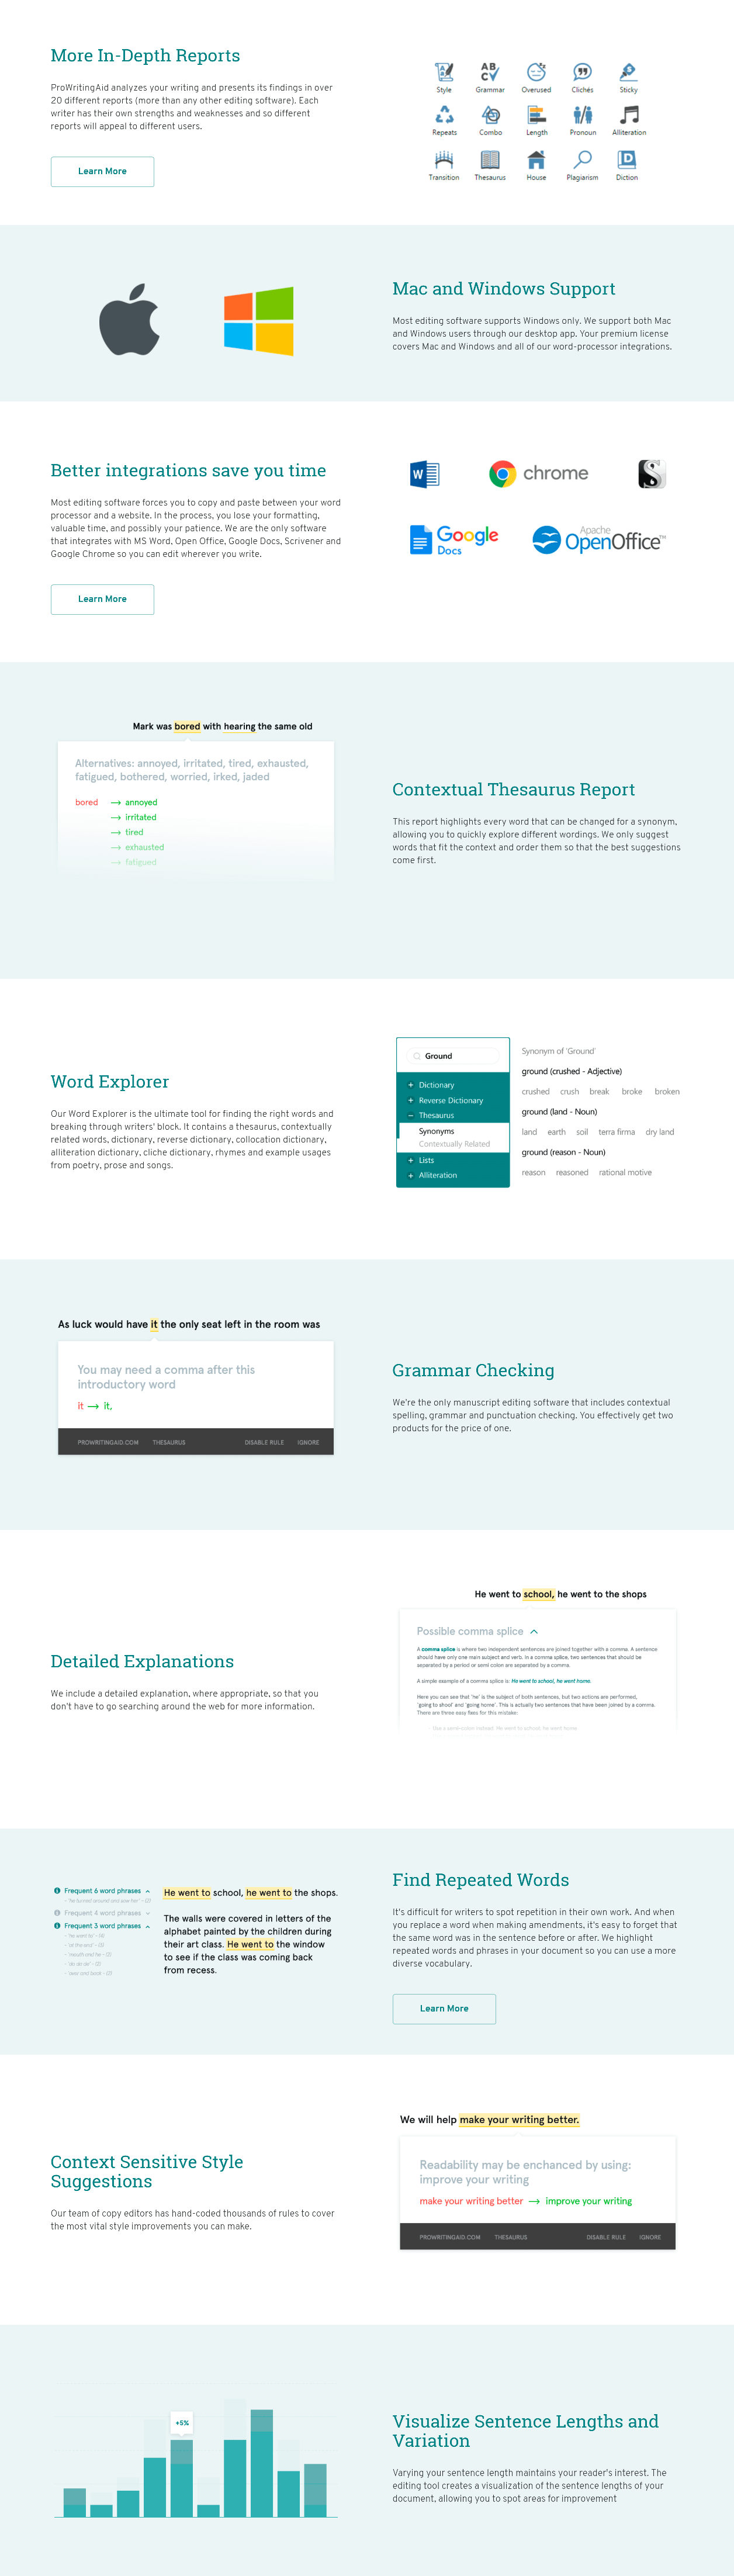 Grammarly Review (2019) - Pros, Cons, Cost & Comparison